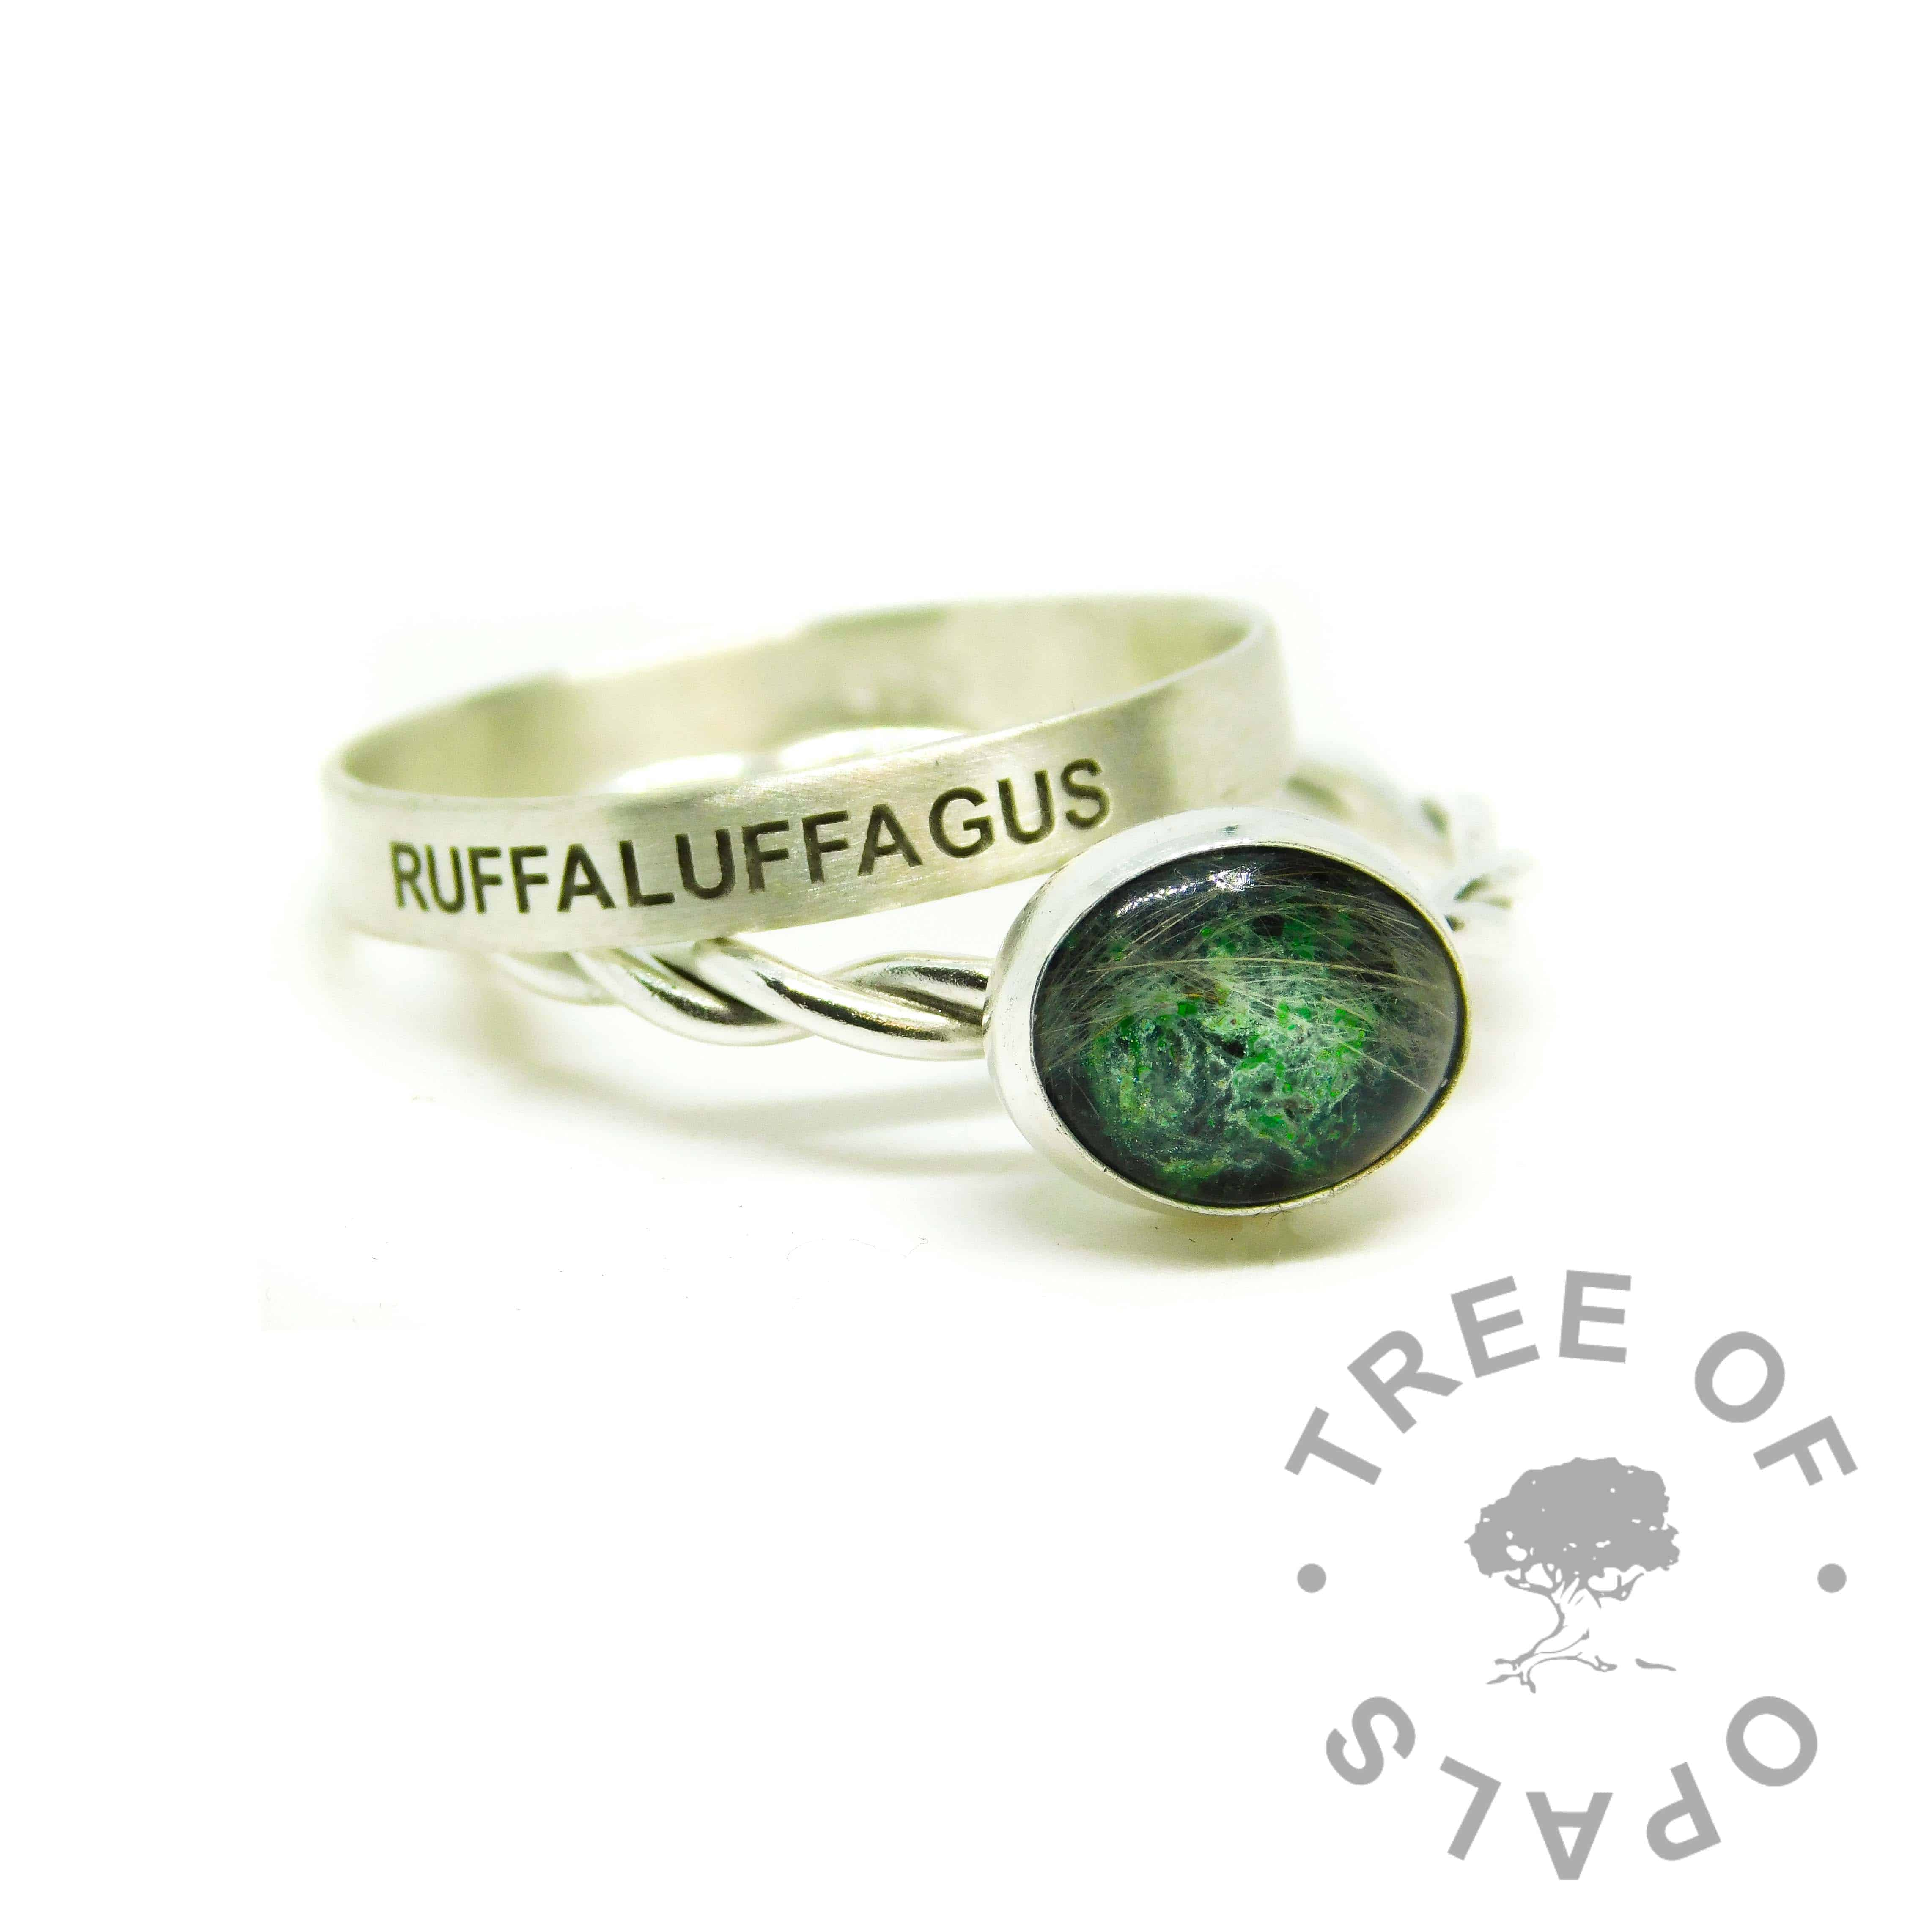 green ashes ring, cremation ashes ring on twisted band. Basilisk green resin sparkle mix. Shown with a brushed band wide stacking ring engraved in Arial font all-caps